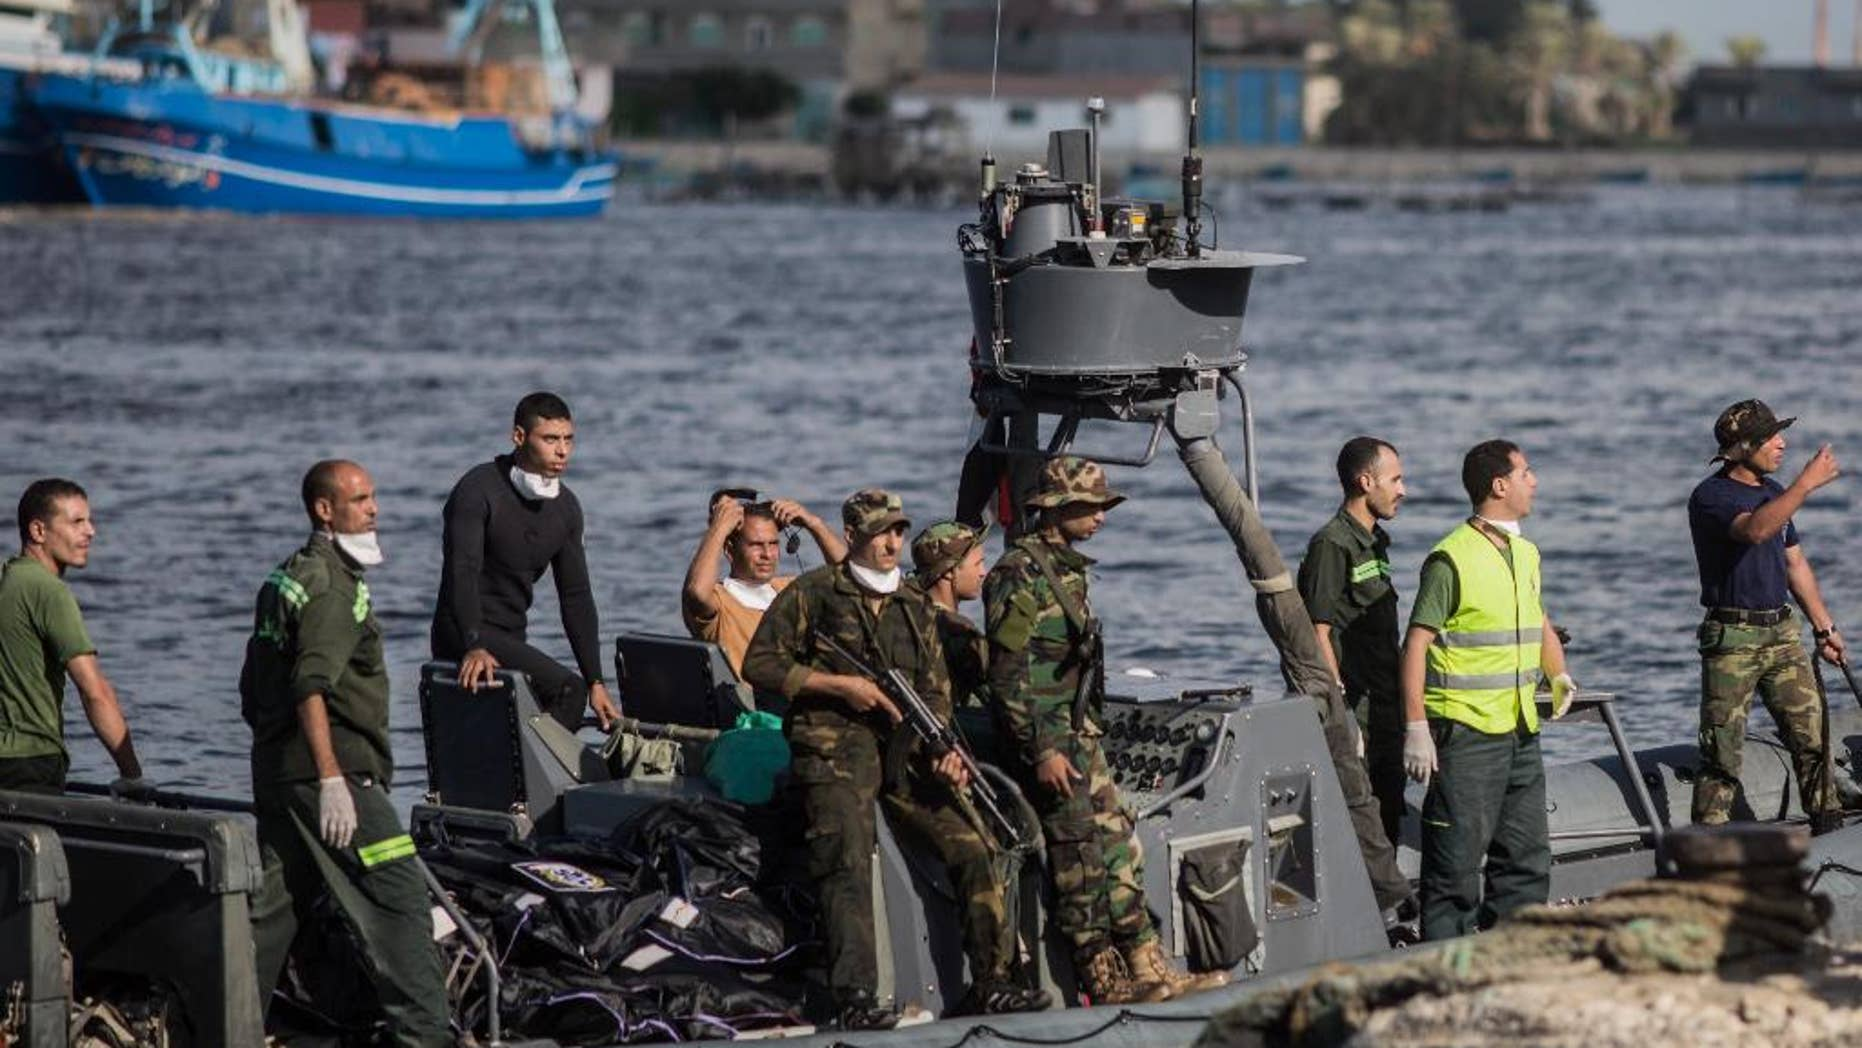 Sept. 22, 2016: Egyptian coast guard and rescue workers bring ashore bodies recovered from a Europe-bound boat that capsized off Egypt's Mediterranean coast, in Rosetta, Egypt.